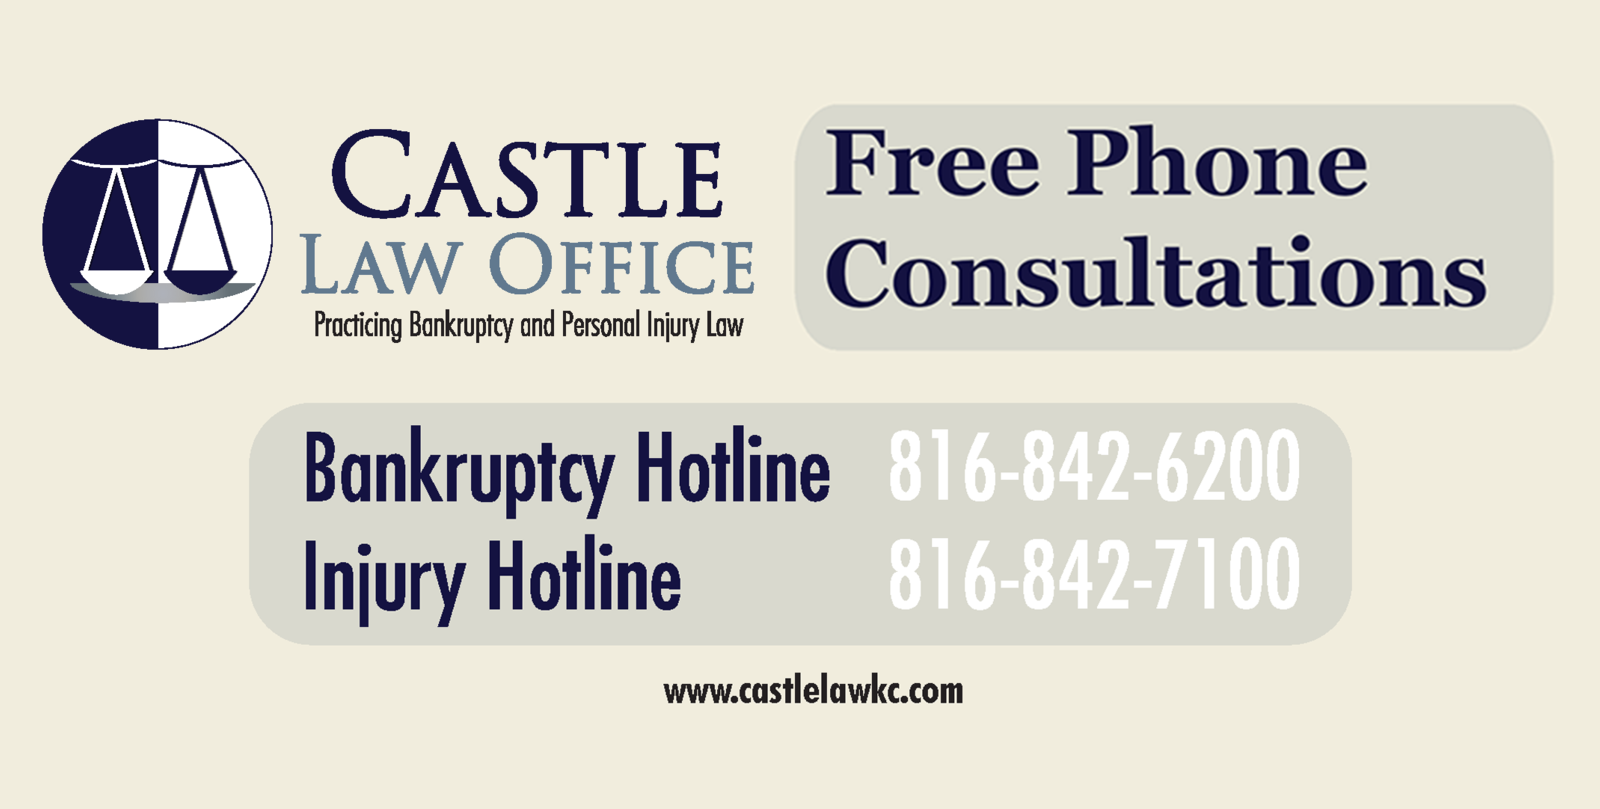 Contact Castle Law for a Covid-19 update